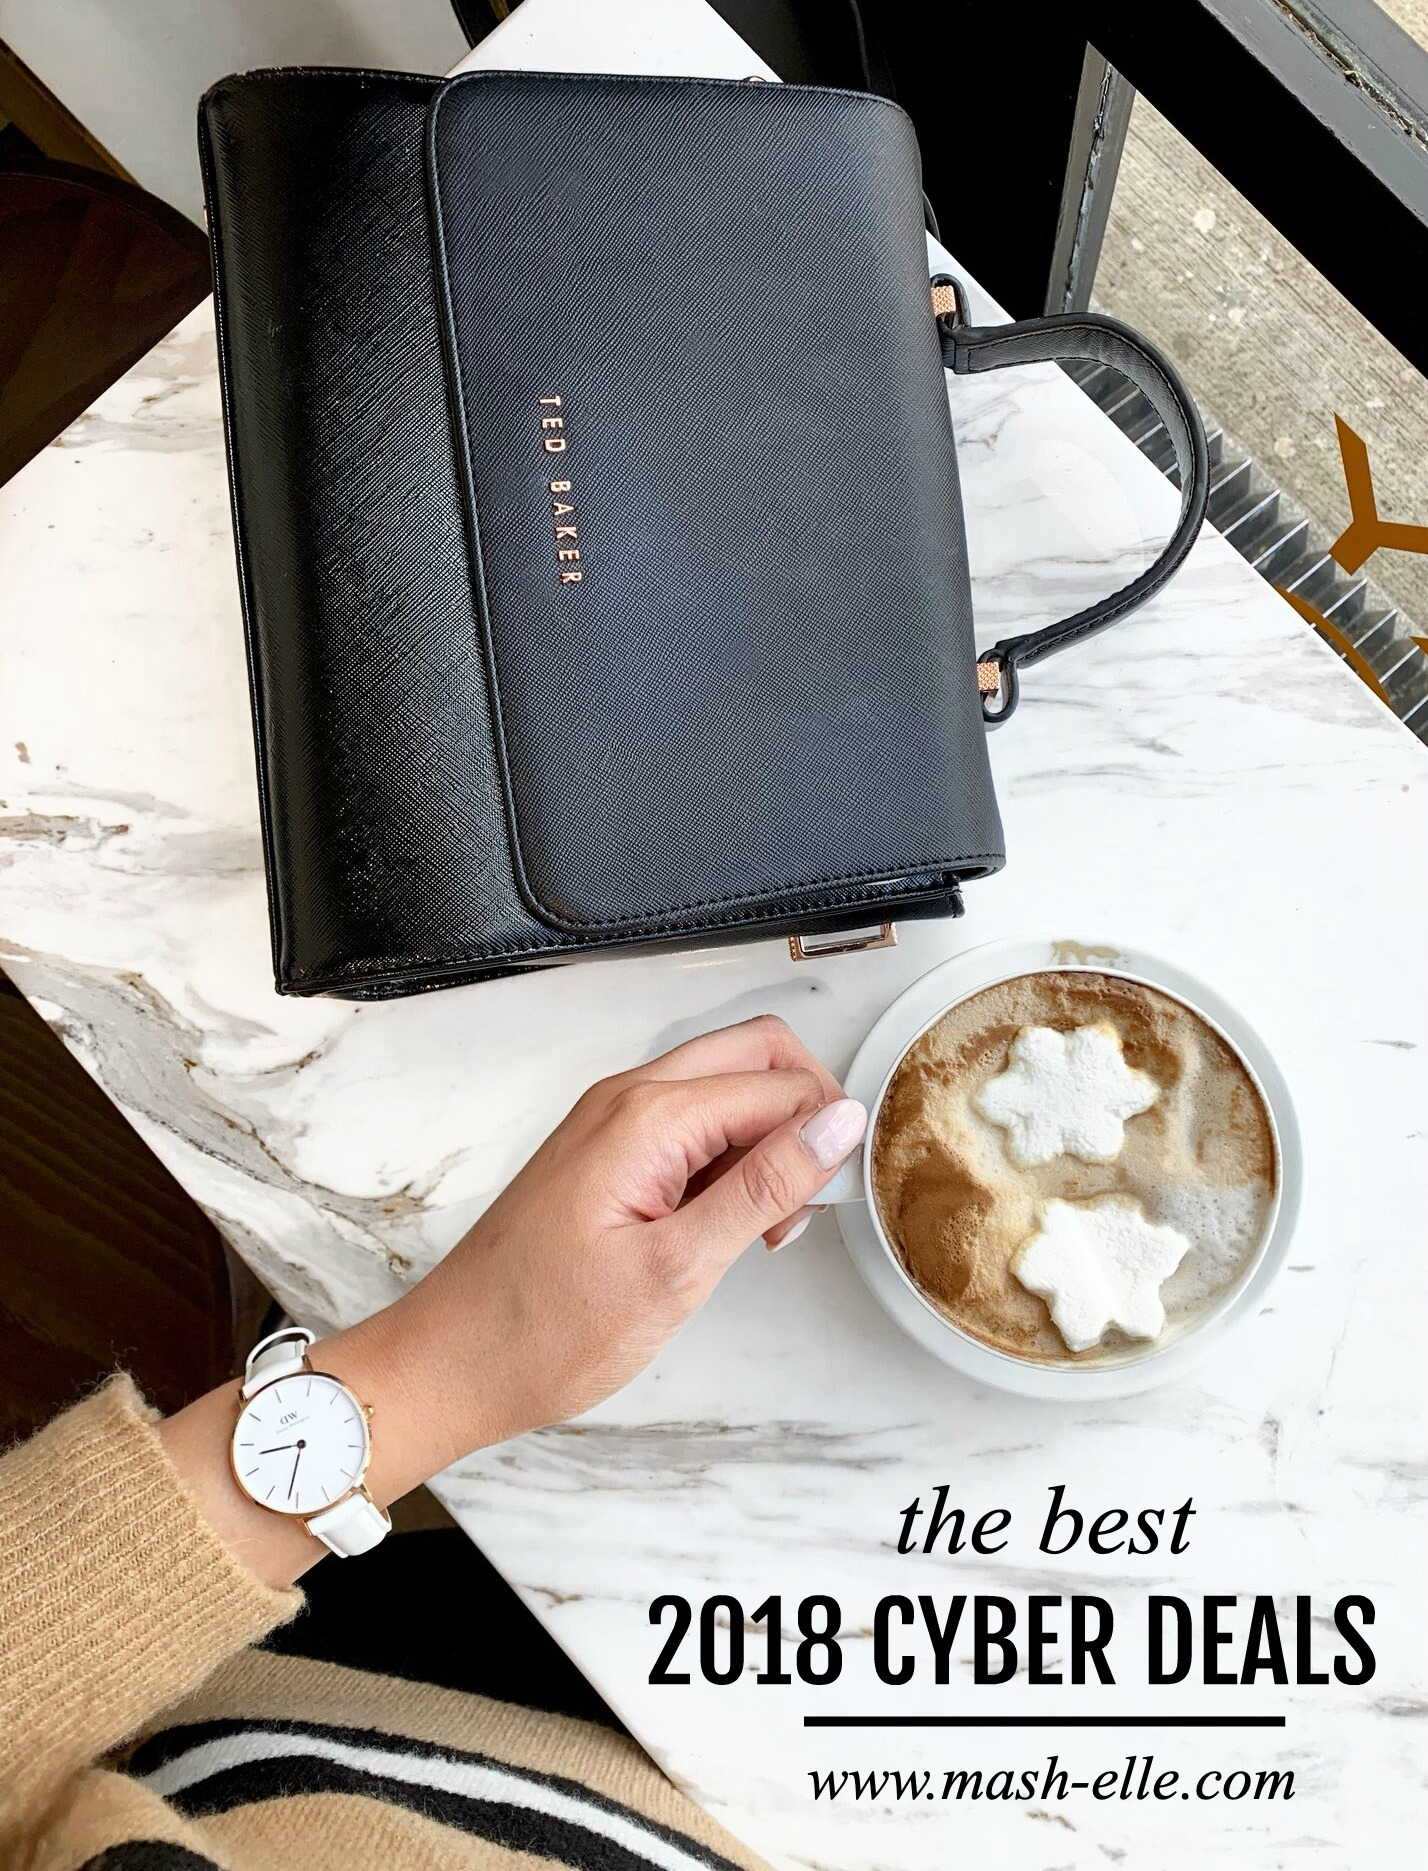 The Best Black Friday Deals | Mash Elle beauty blogger | 2018 Cyber Deals | Black Friday | Christmas Gifts | Ted Baker